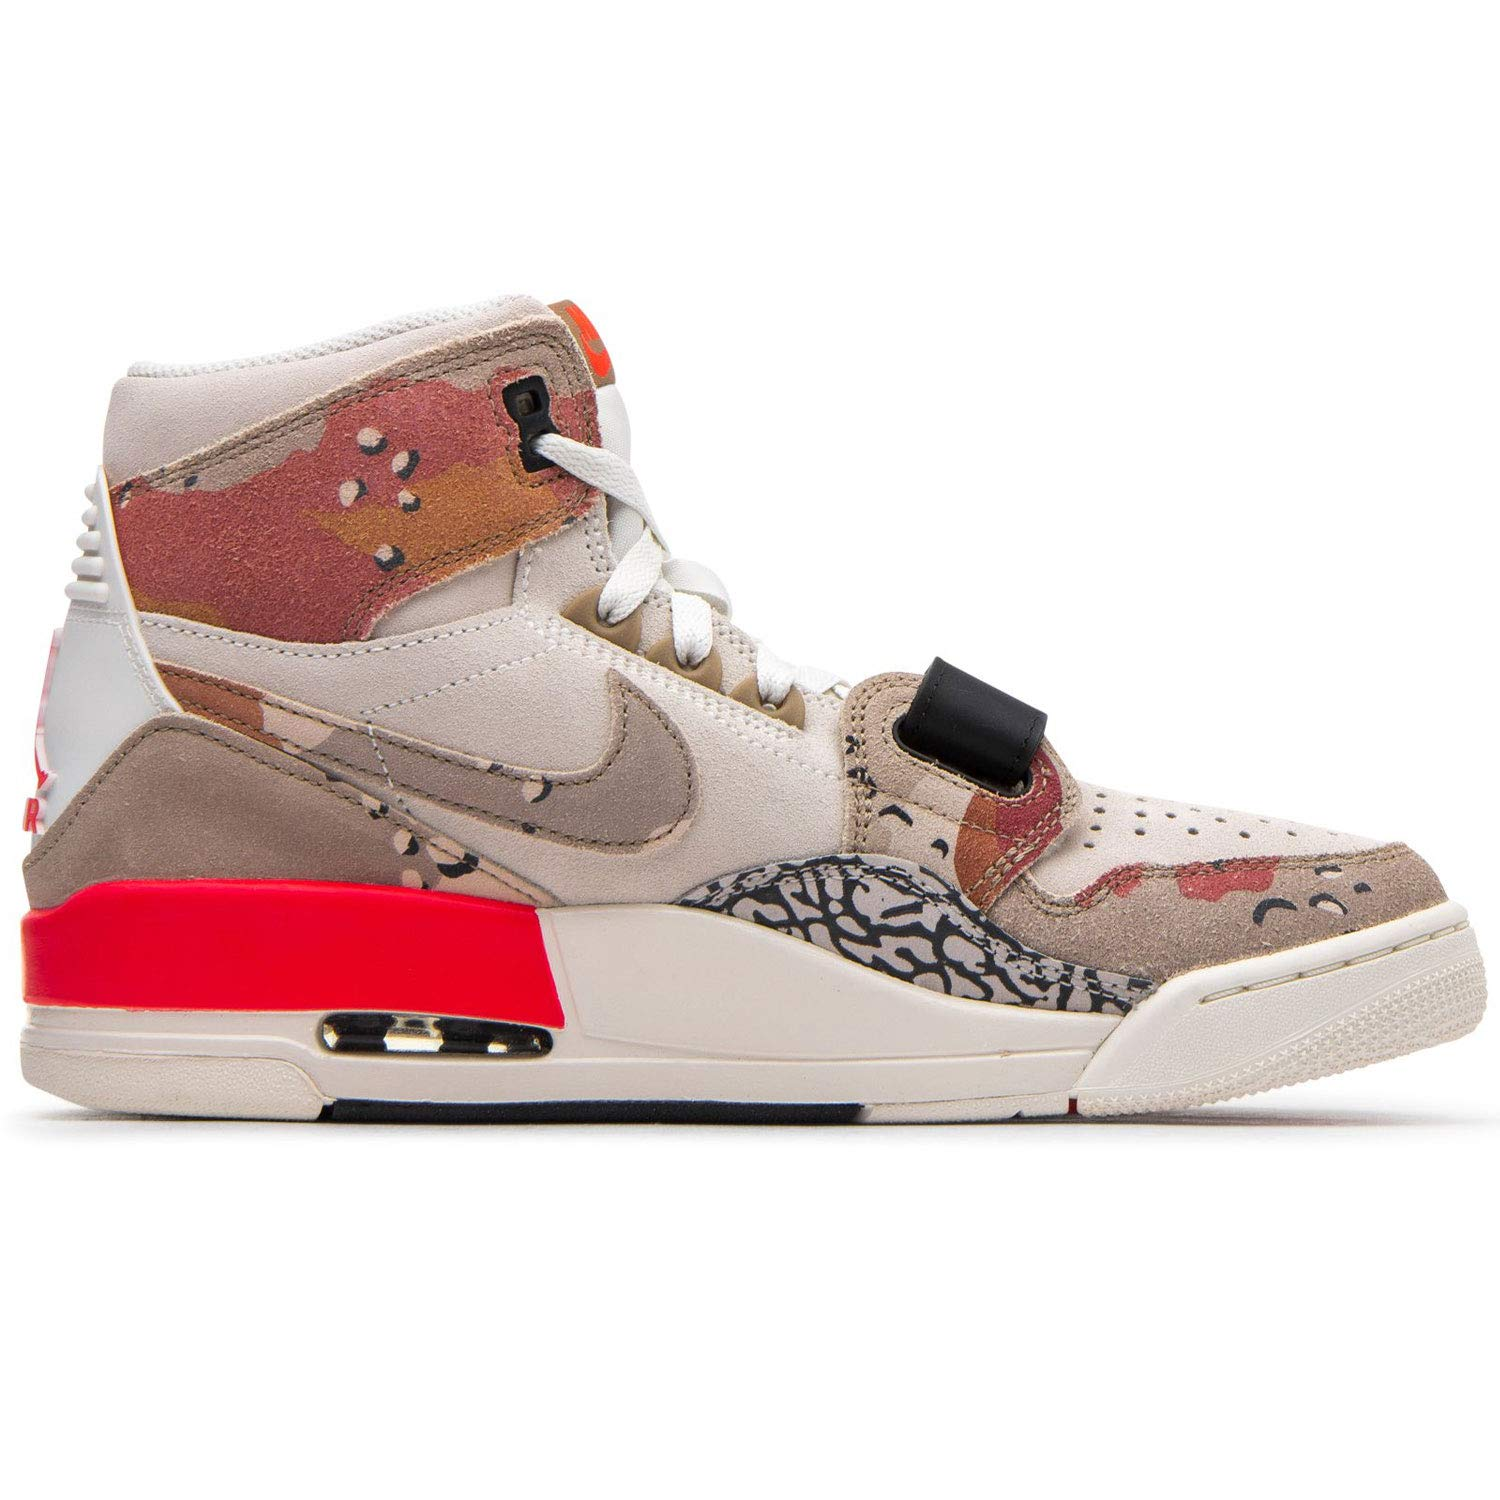 3421417e Amazon.com | Jordan Nike Men's Air Legacy 312 Desert Camo AV3922-126 |  Basketball